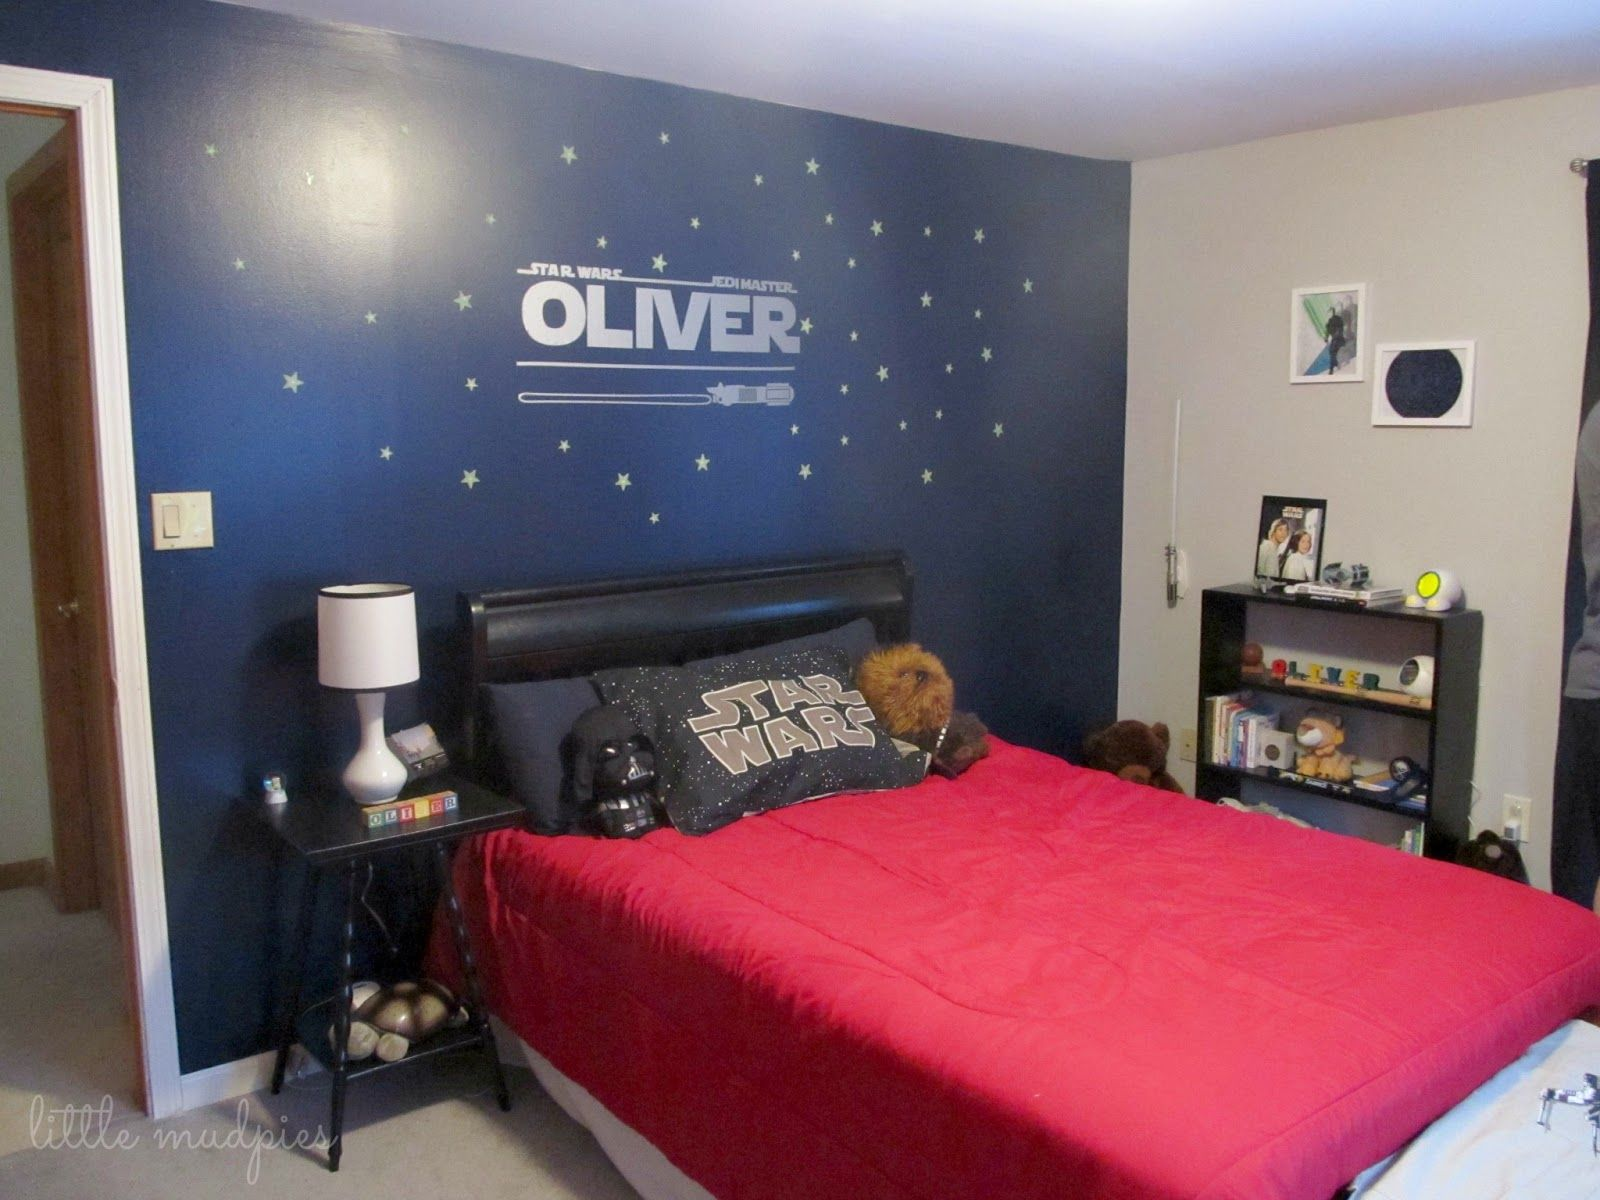 Star wars themed bedroom via little mudpies one dark wall for Nice bedroom ideas